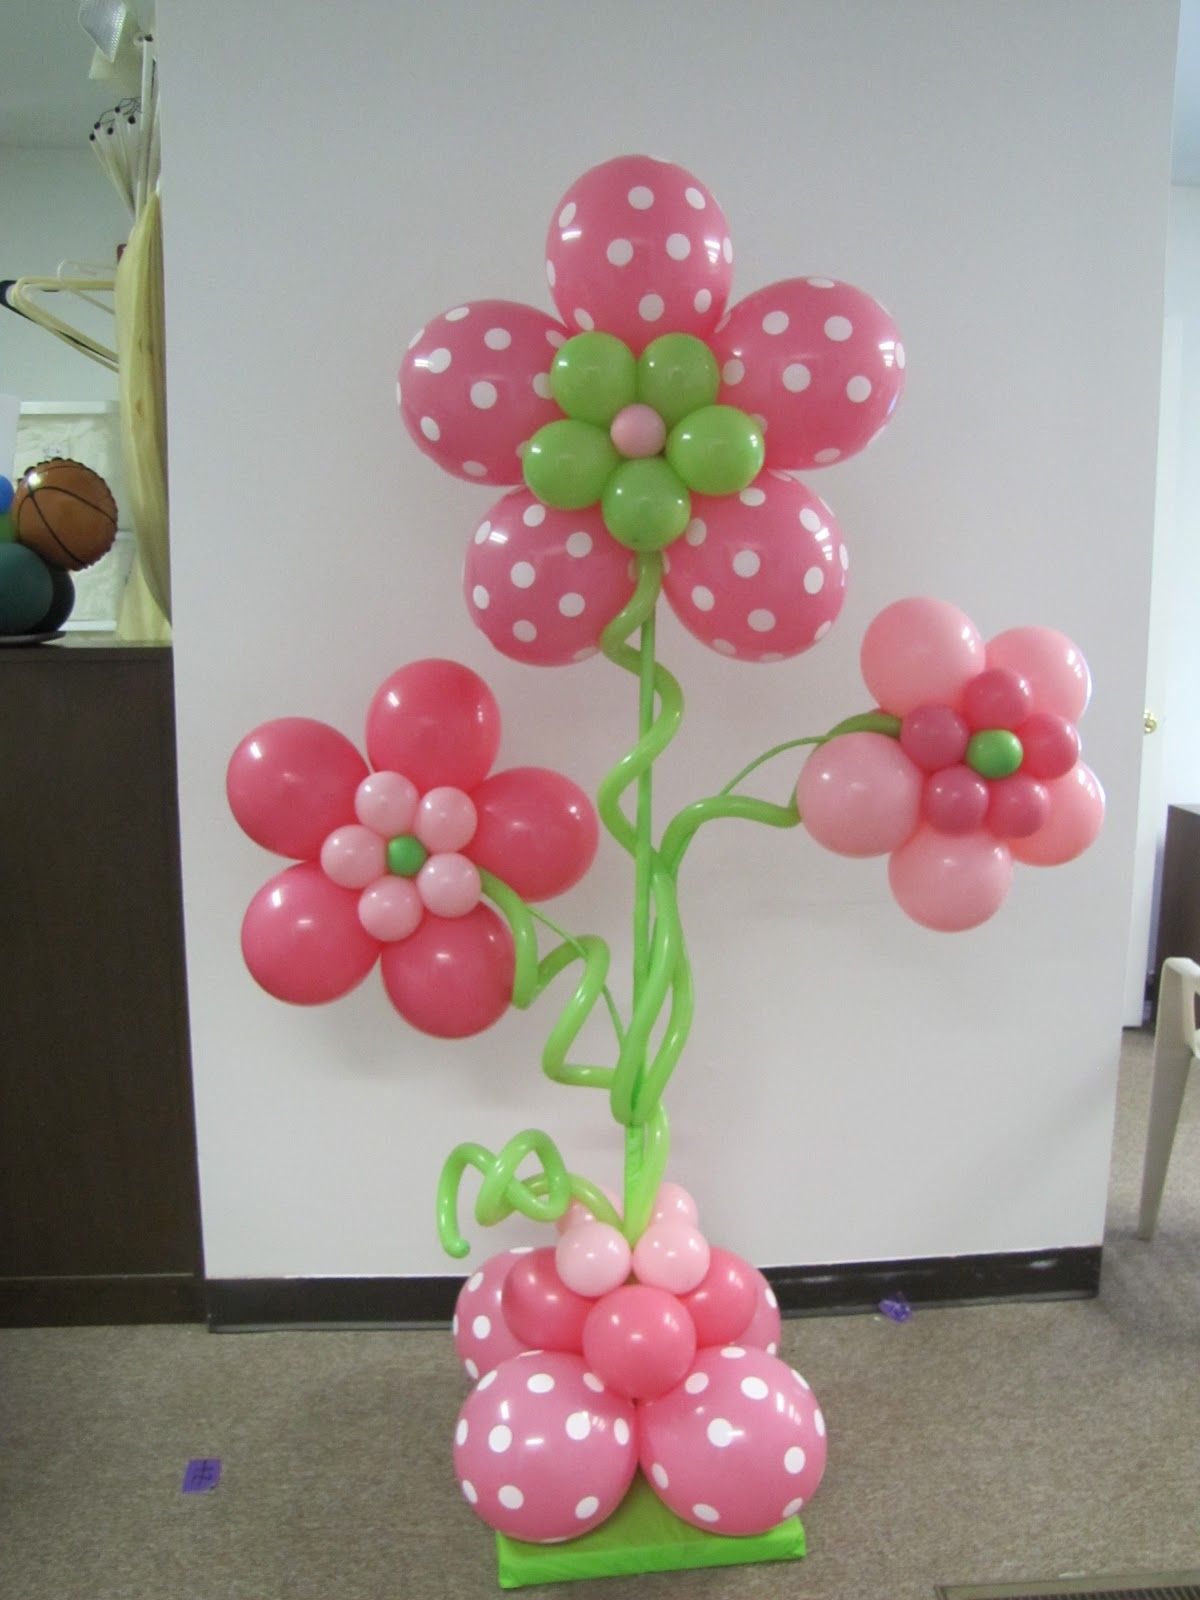 images about decoracin con globos on pinterest balloon decorations baby shower balloons and balloons